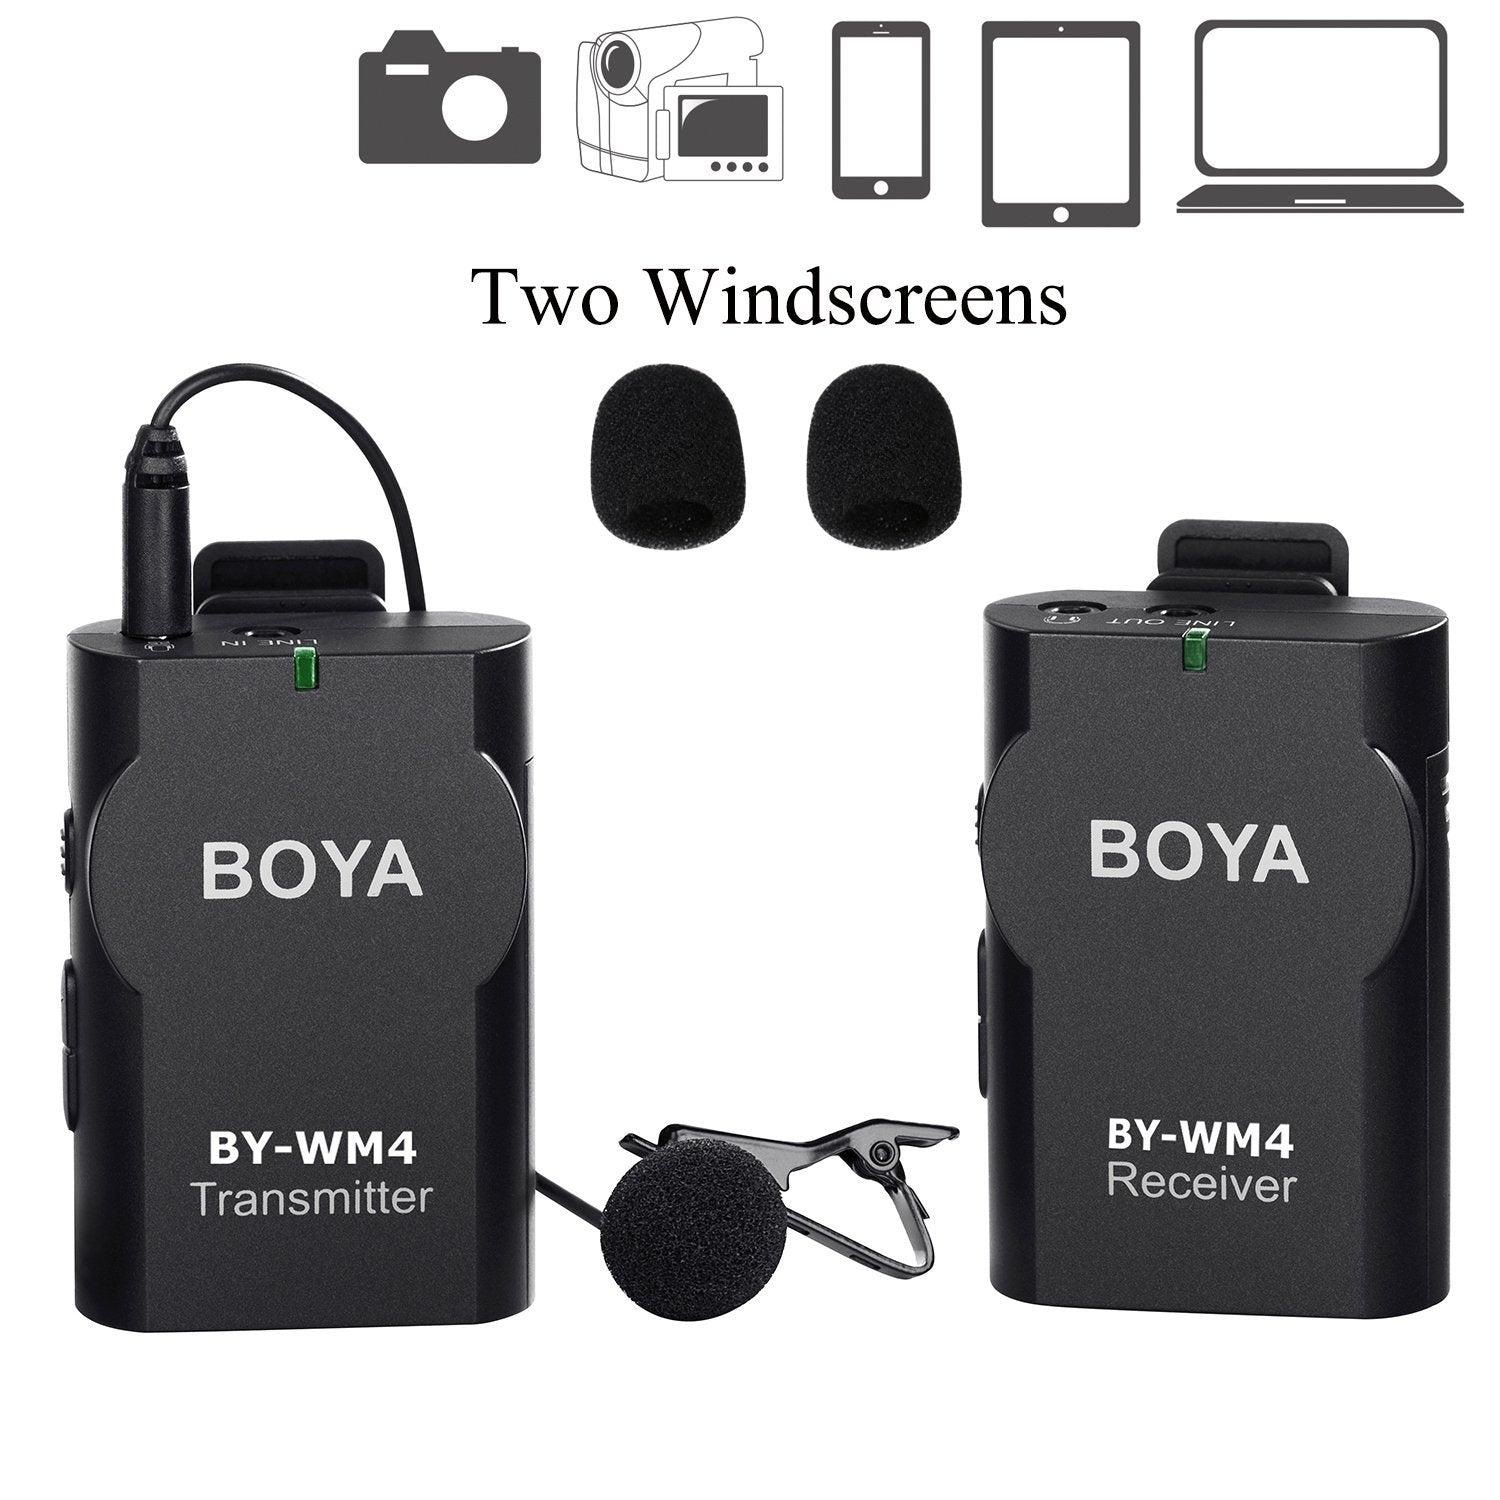 BOYA BY-WM4 High Performance Wireless Microphone System for Smartphone, Tablet, DSLR, Audio Recorder and PC